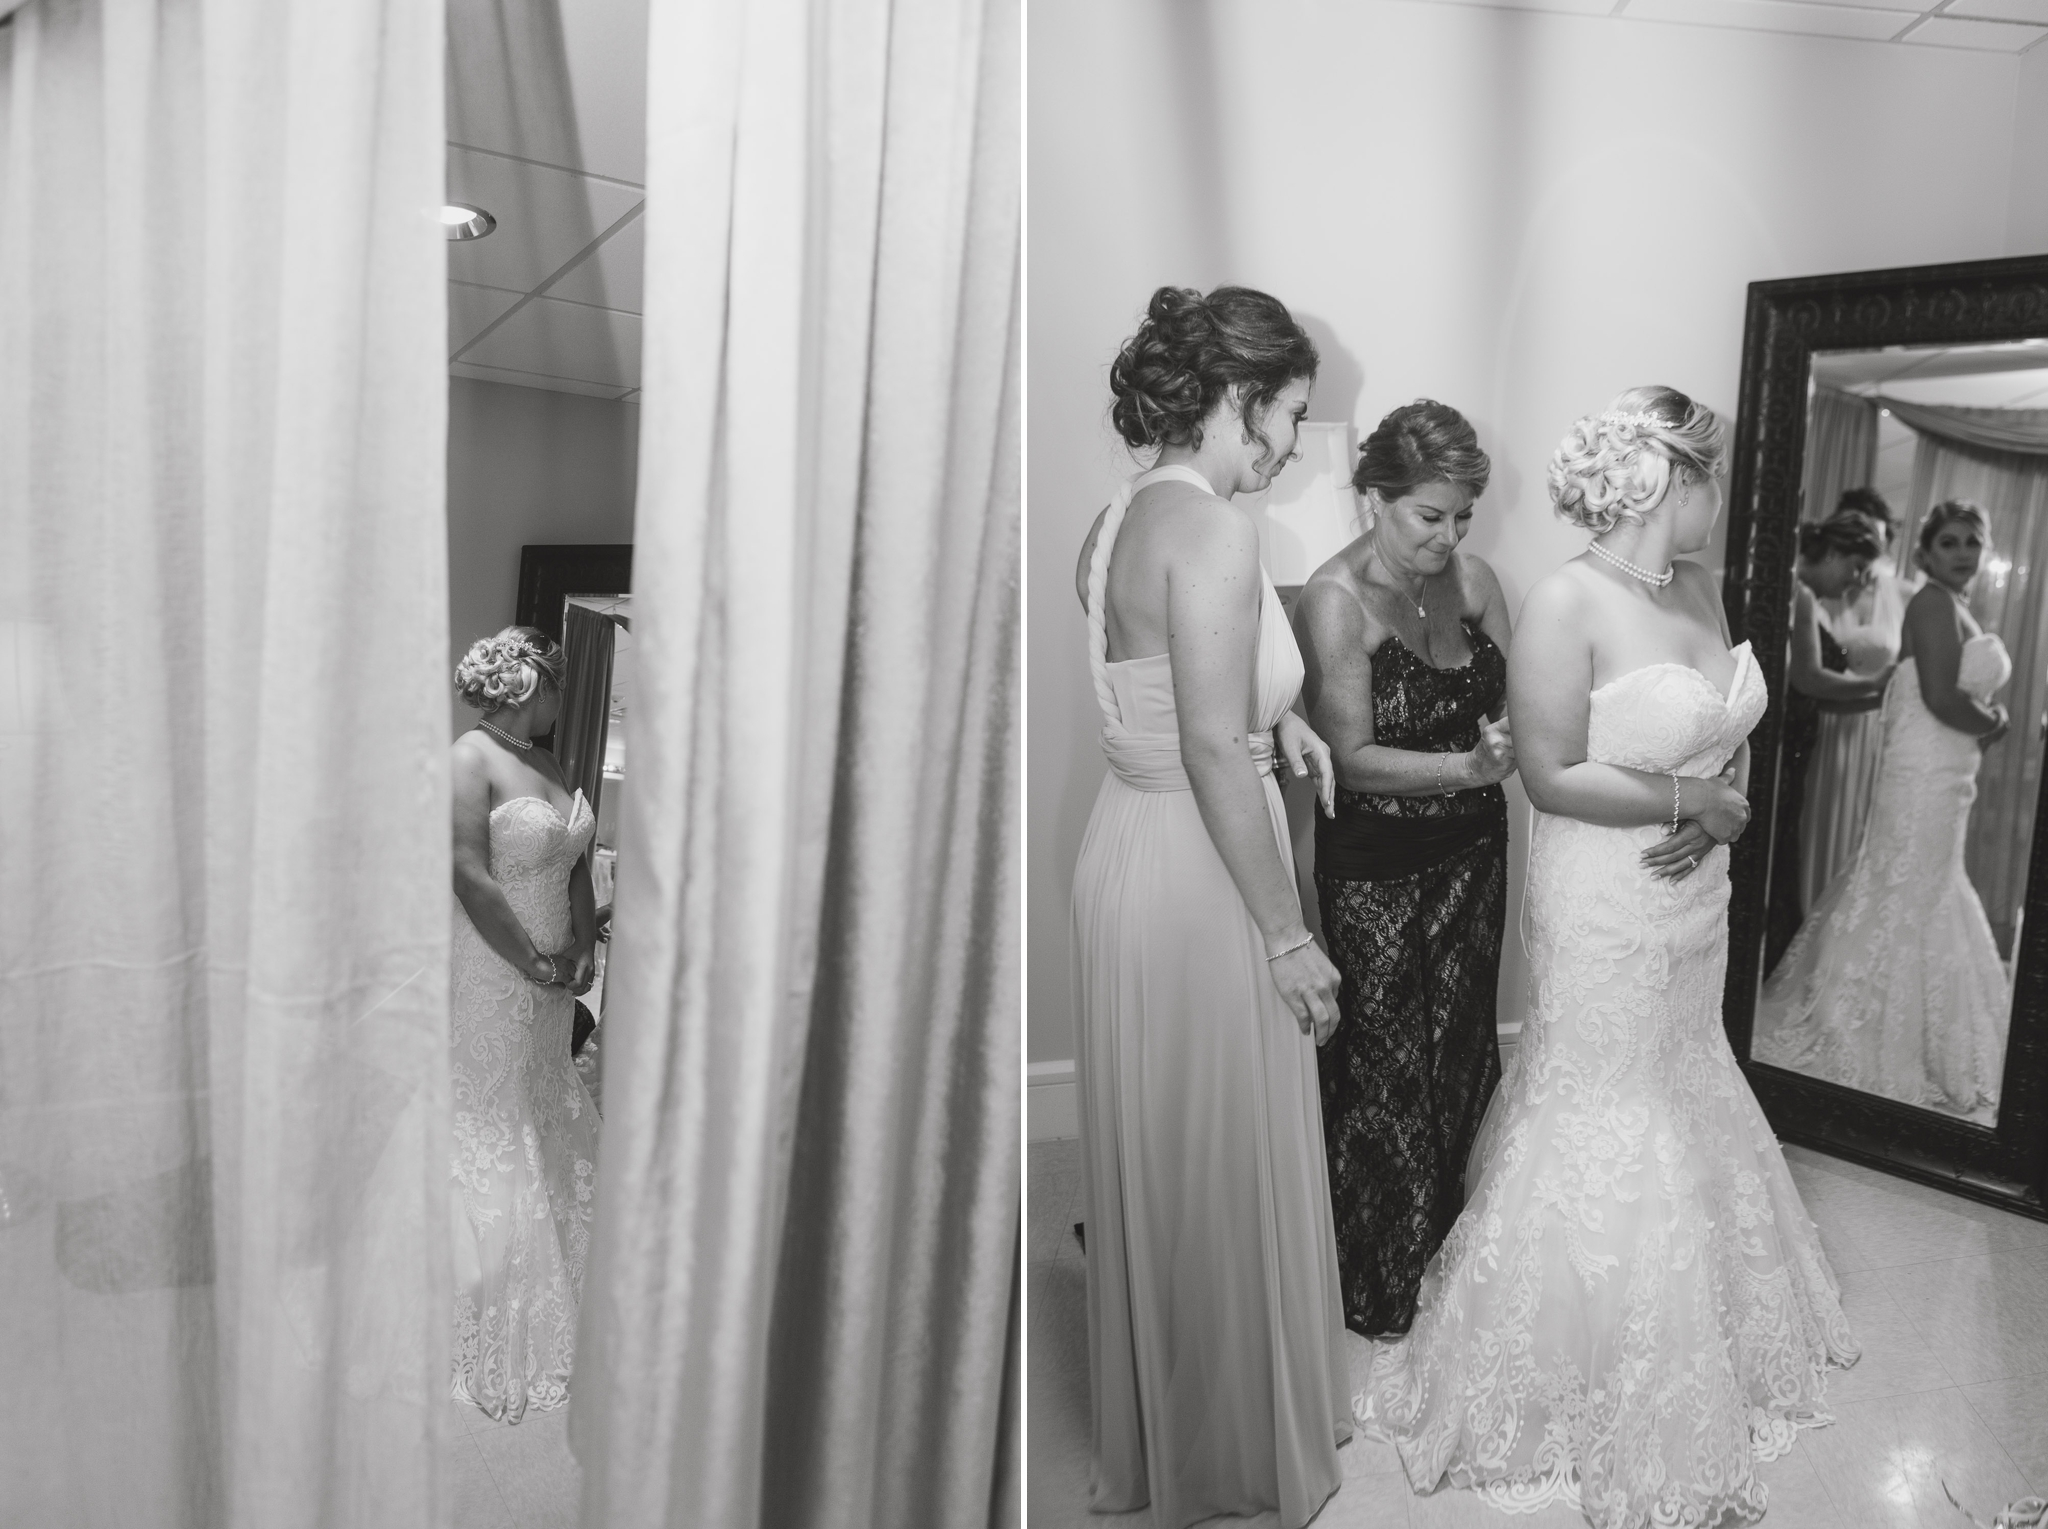 Johanna Dye Photography is a Wedding and Portrait Photographer in Fayetteville, Asheville, Wilmington & Raleigh-Durham